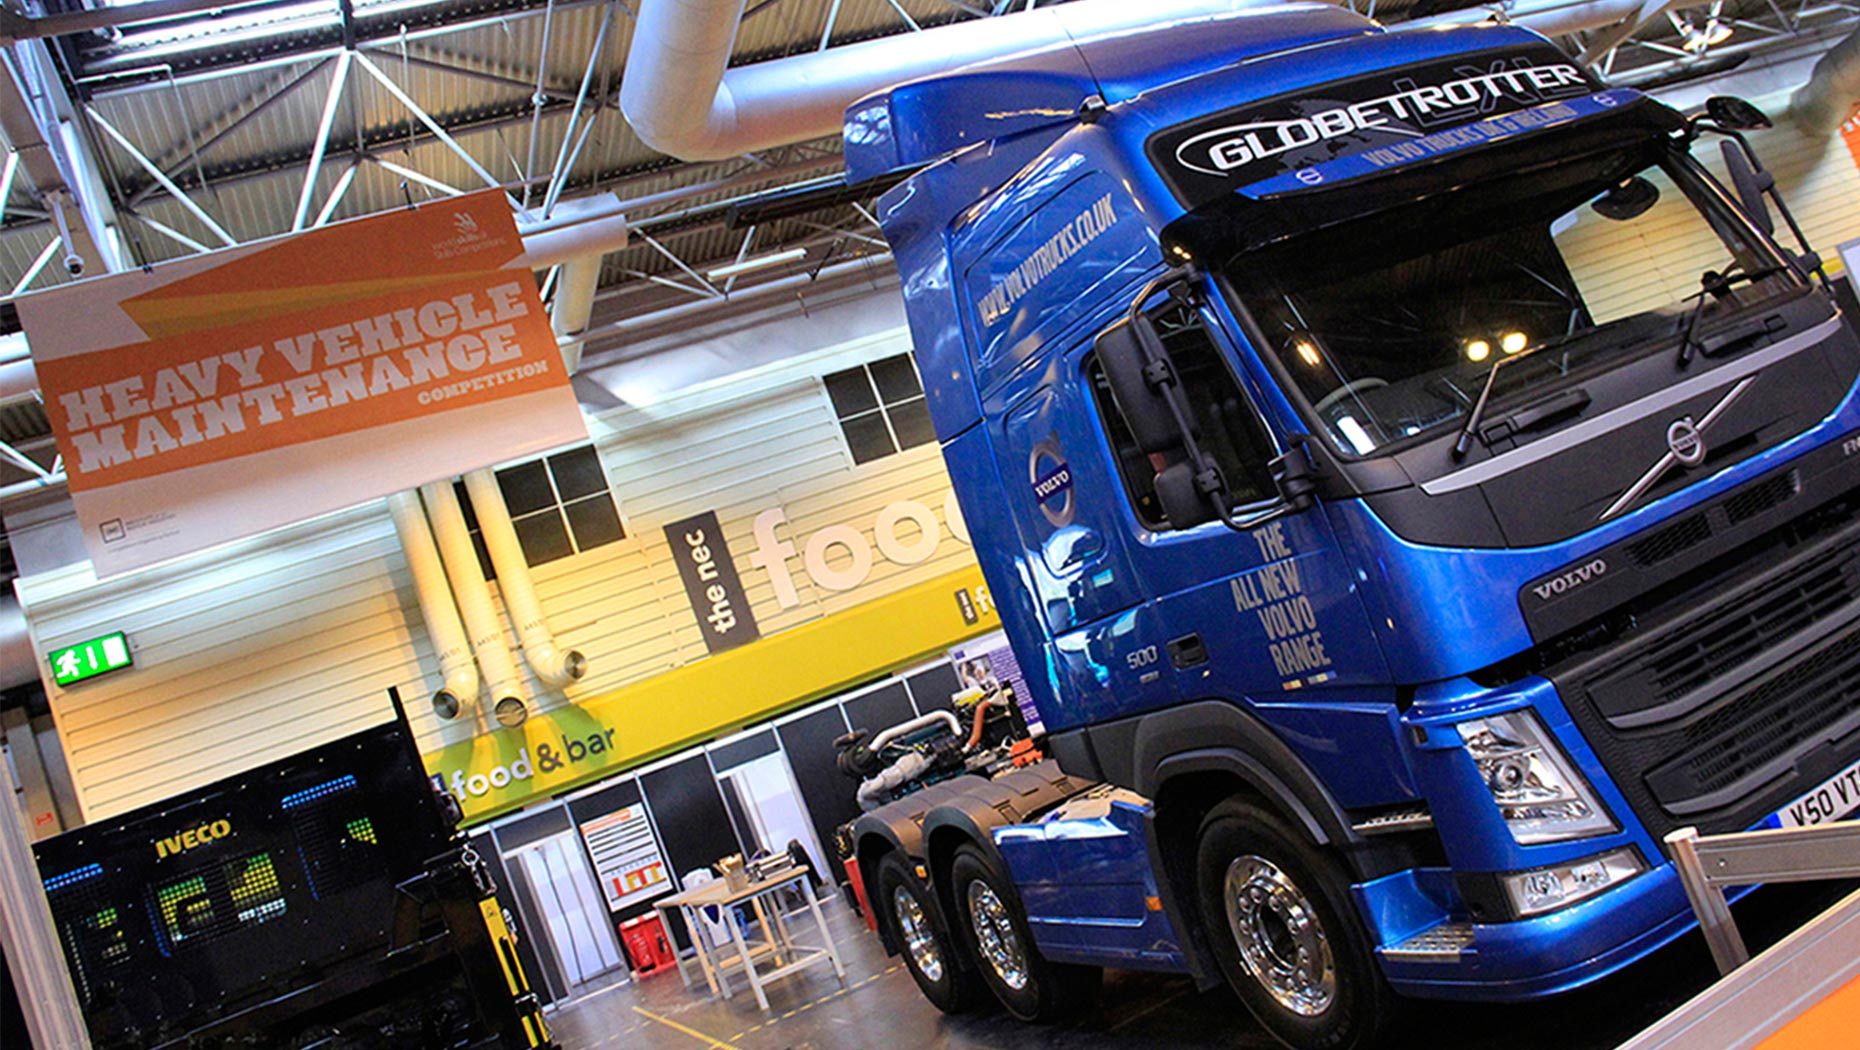 Volvo Trucks at WorldSkills UK Heavy Vehicle Technicians Competition